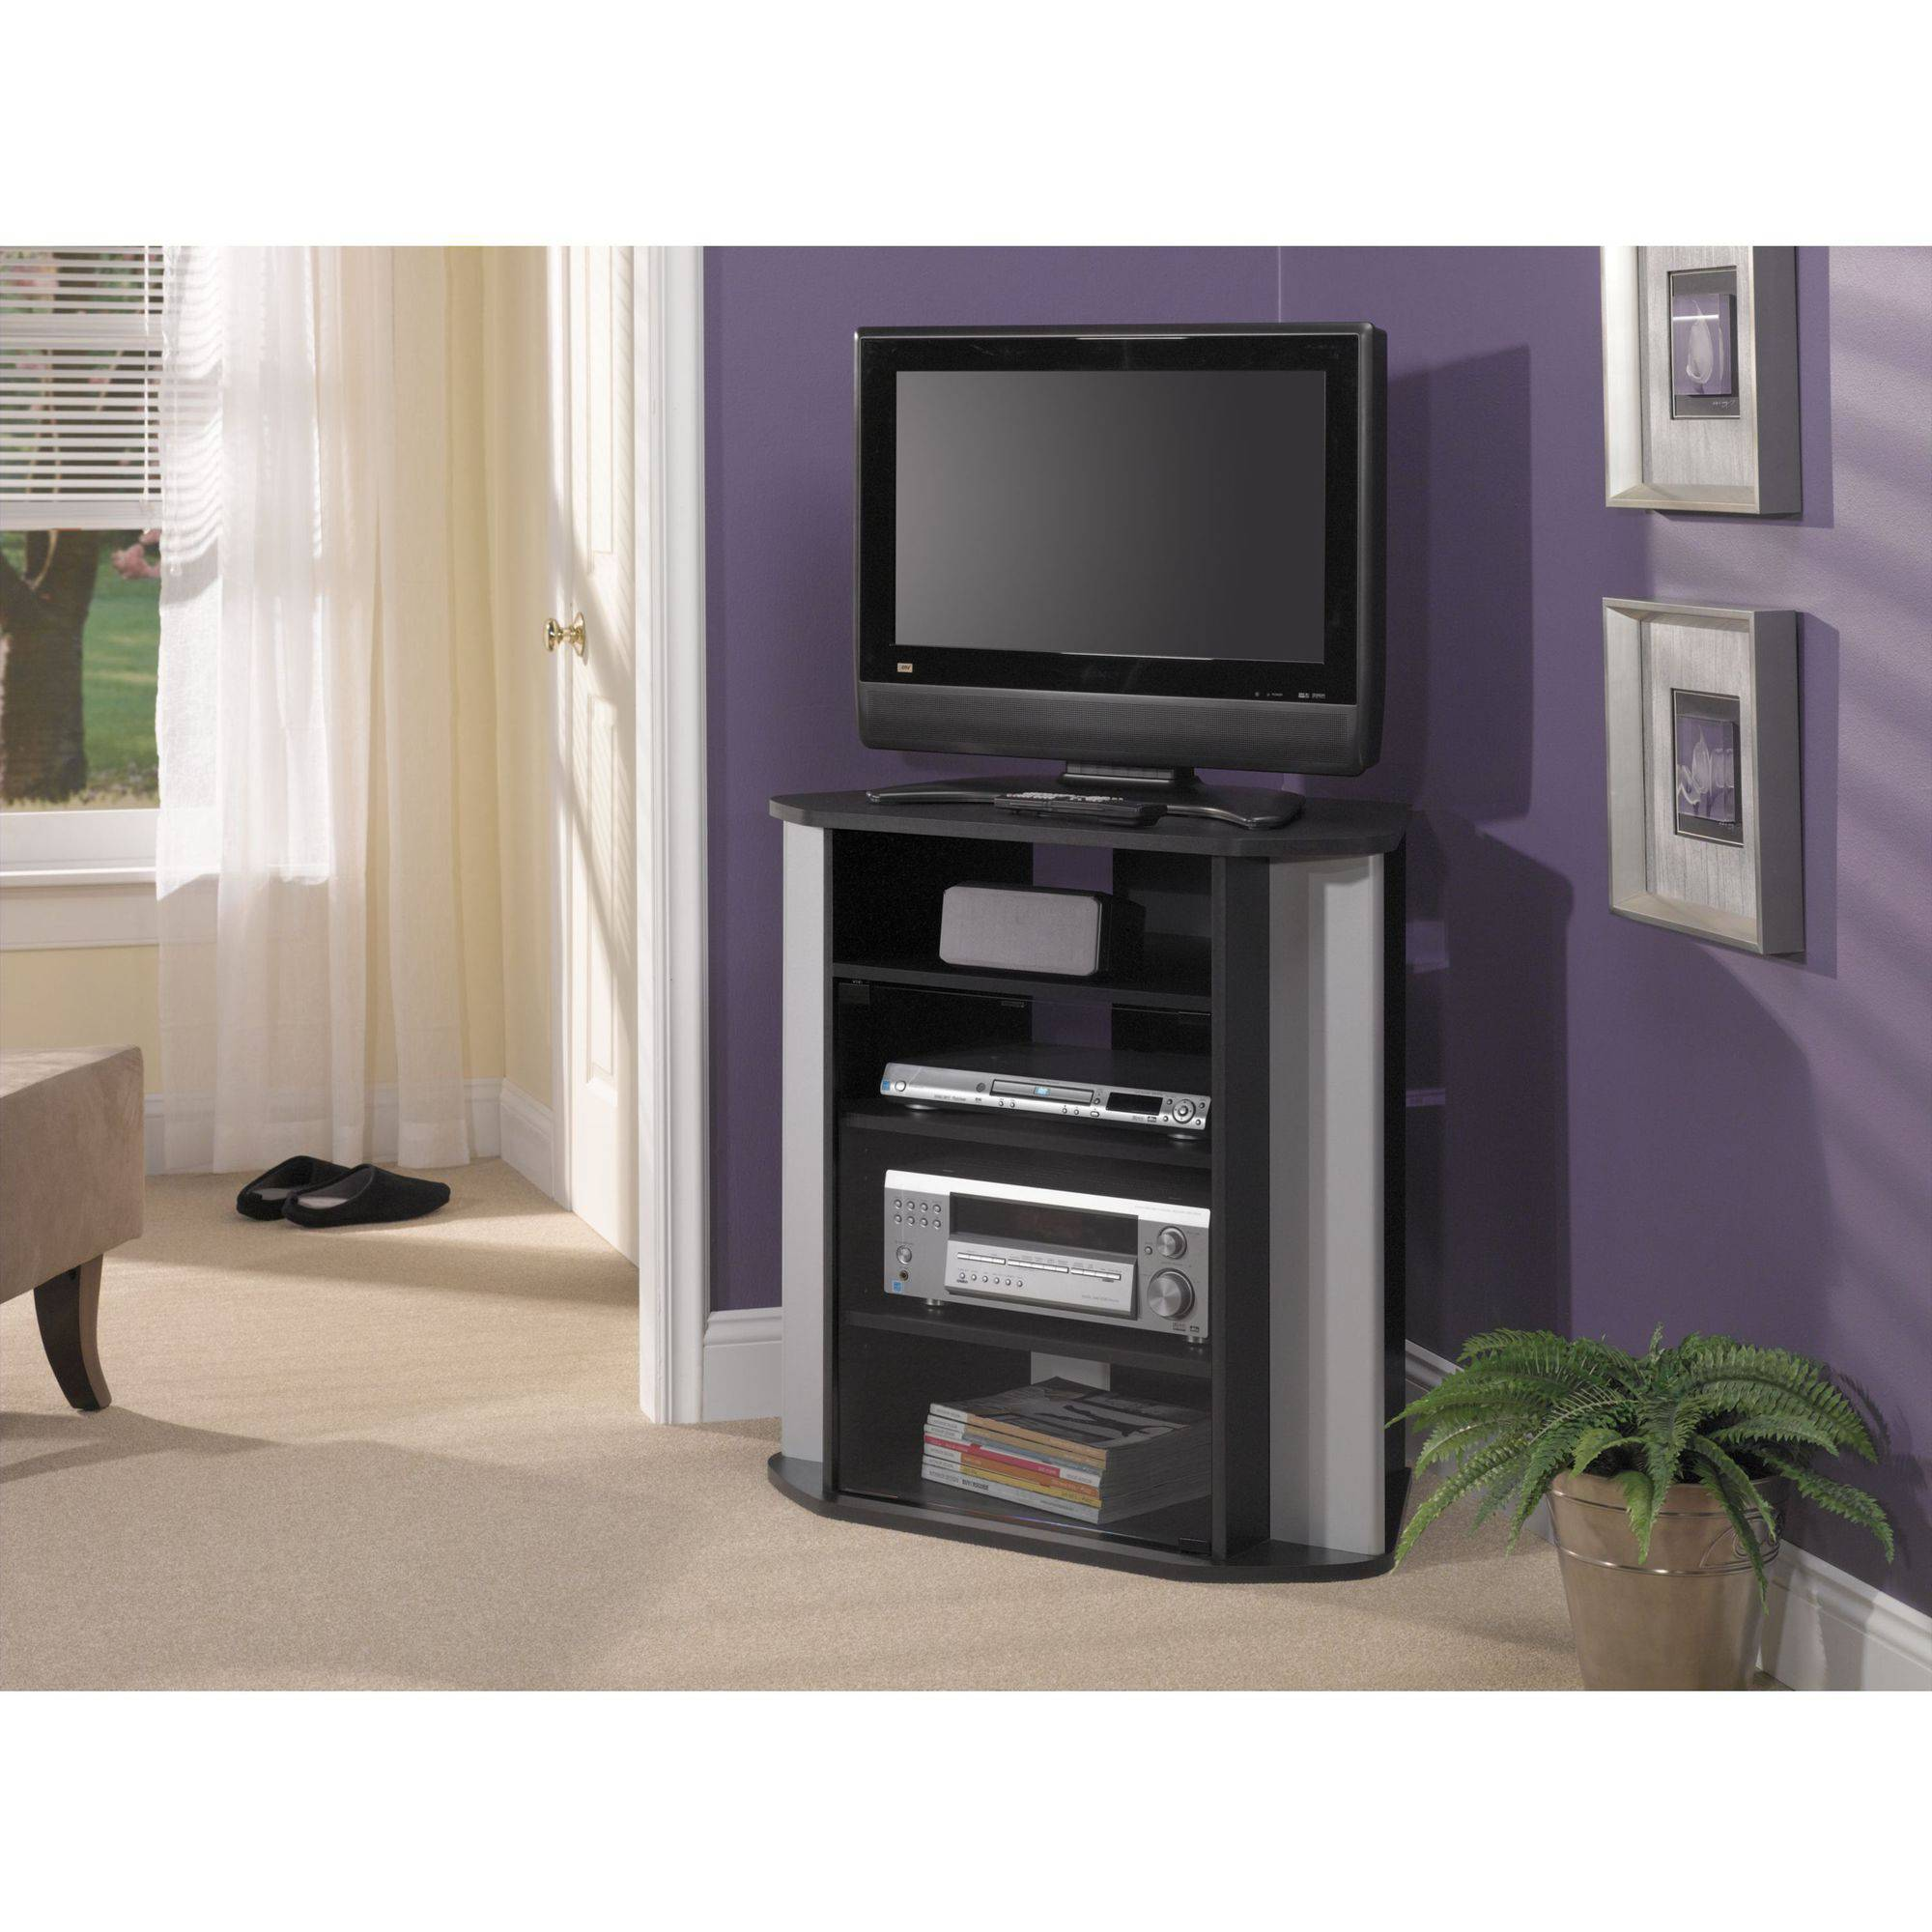 Bush Furniture Visions Tall Corner TV Stand in Black and Metallic